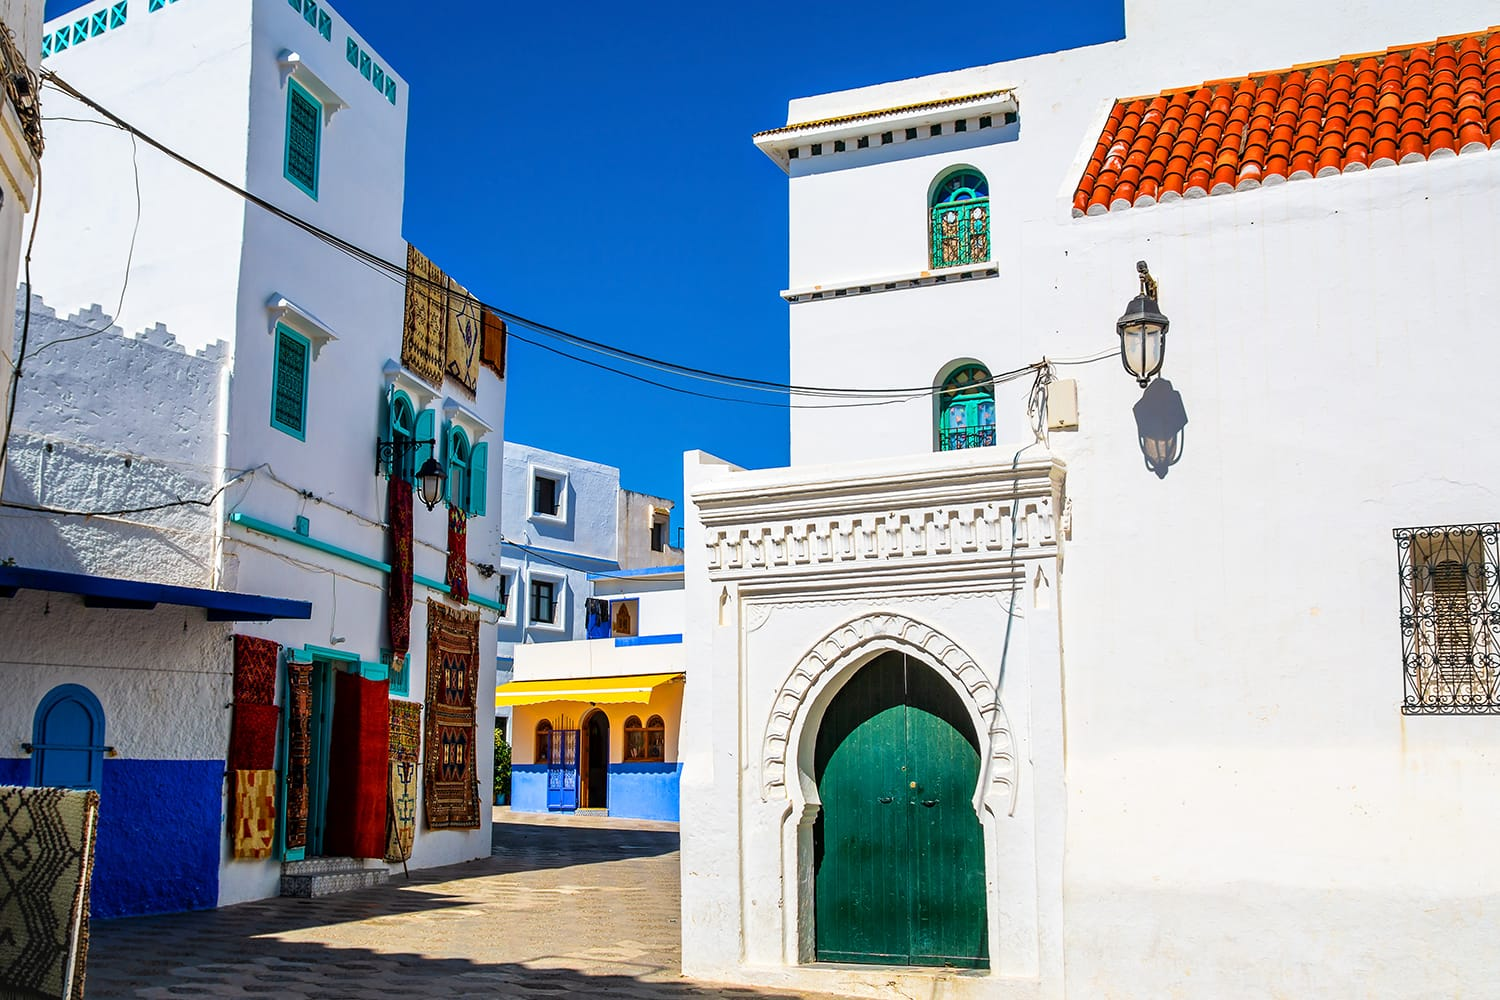 Beautiful view of street with typical arabic architecture in Asilah, North Morocco, Africa.